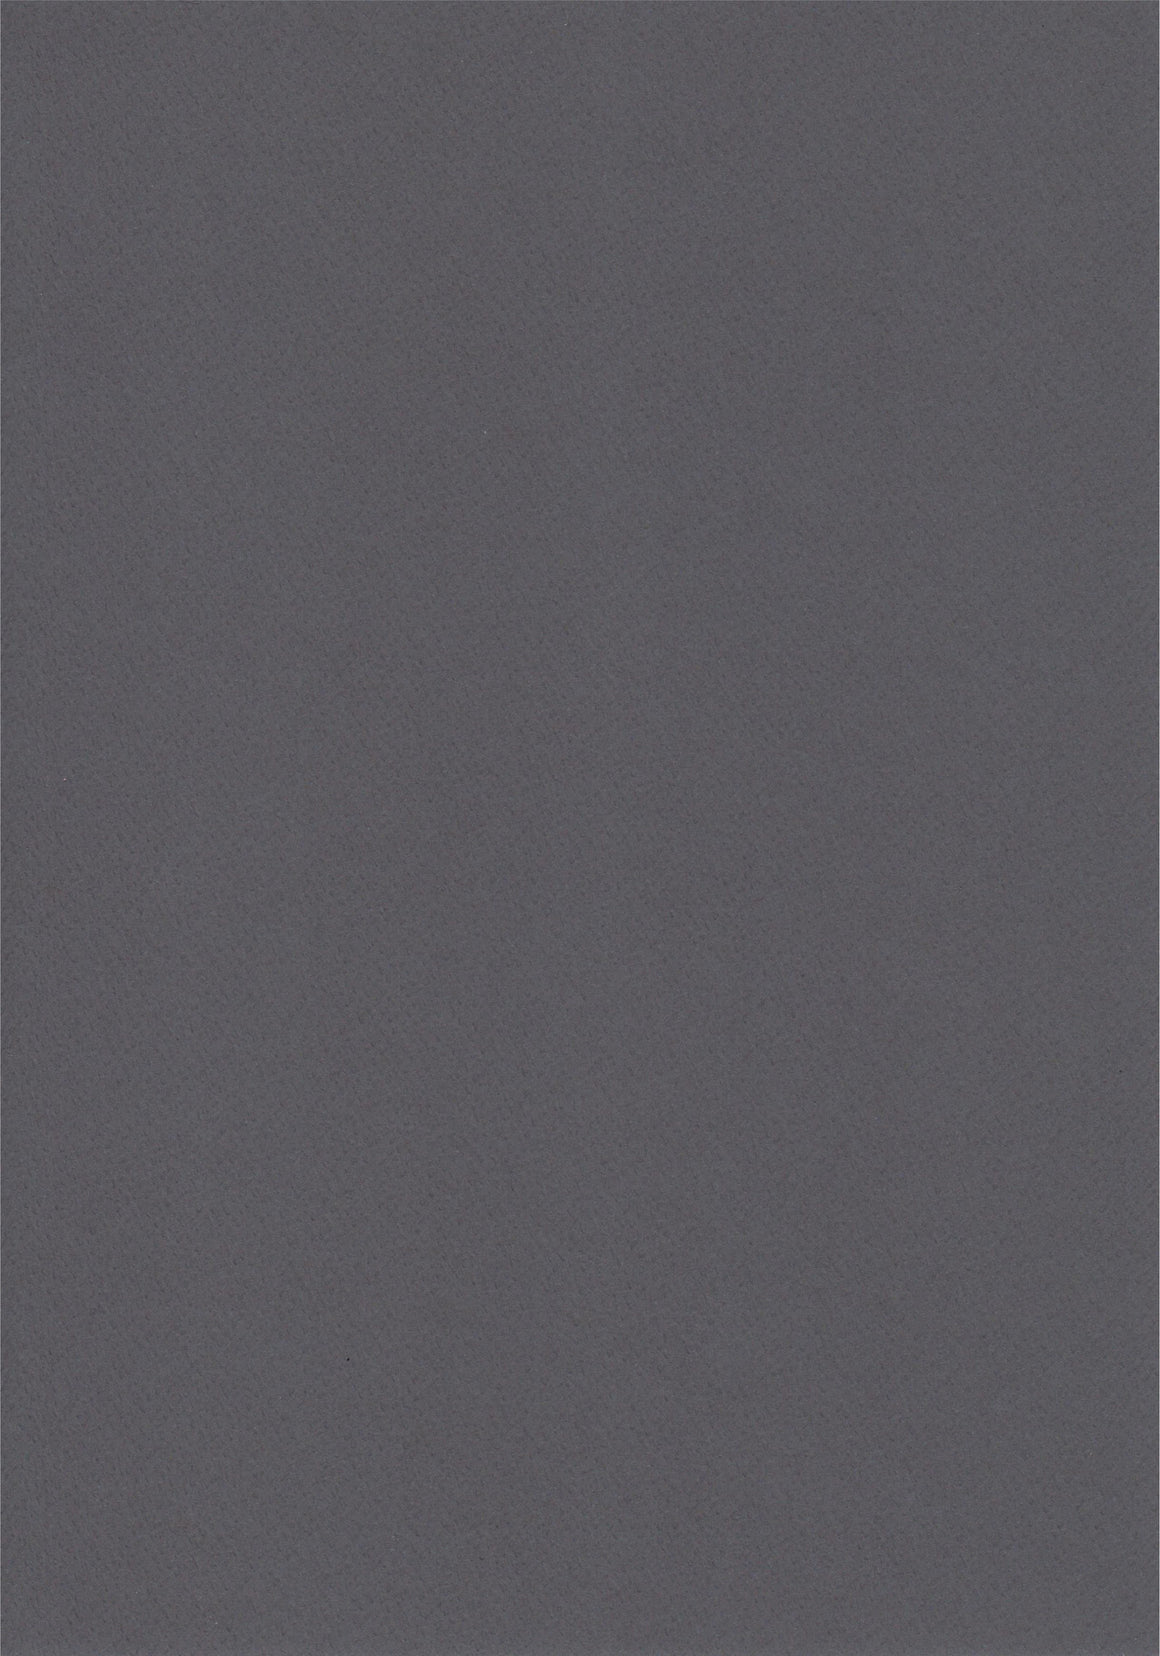 Dark Grey A4 Card